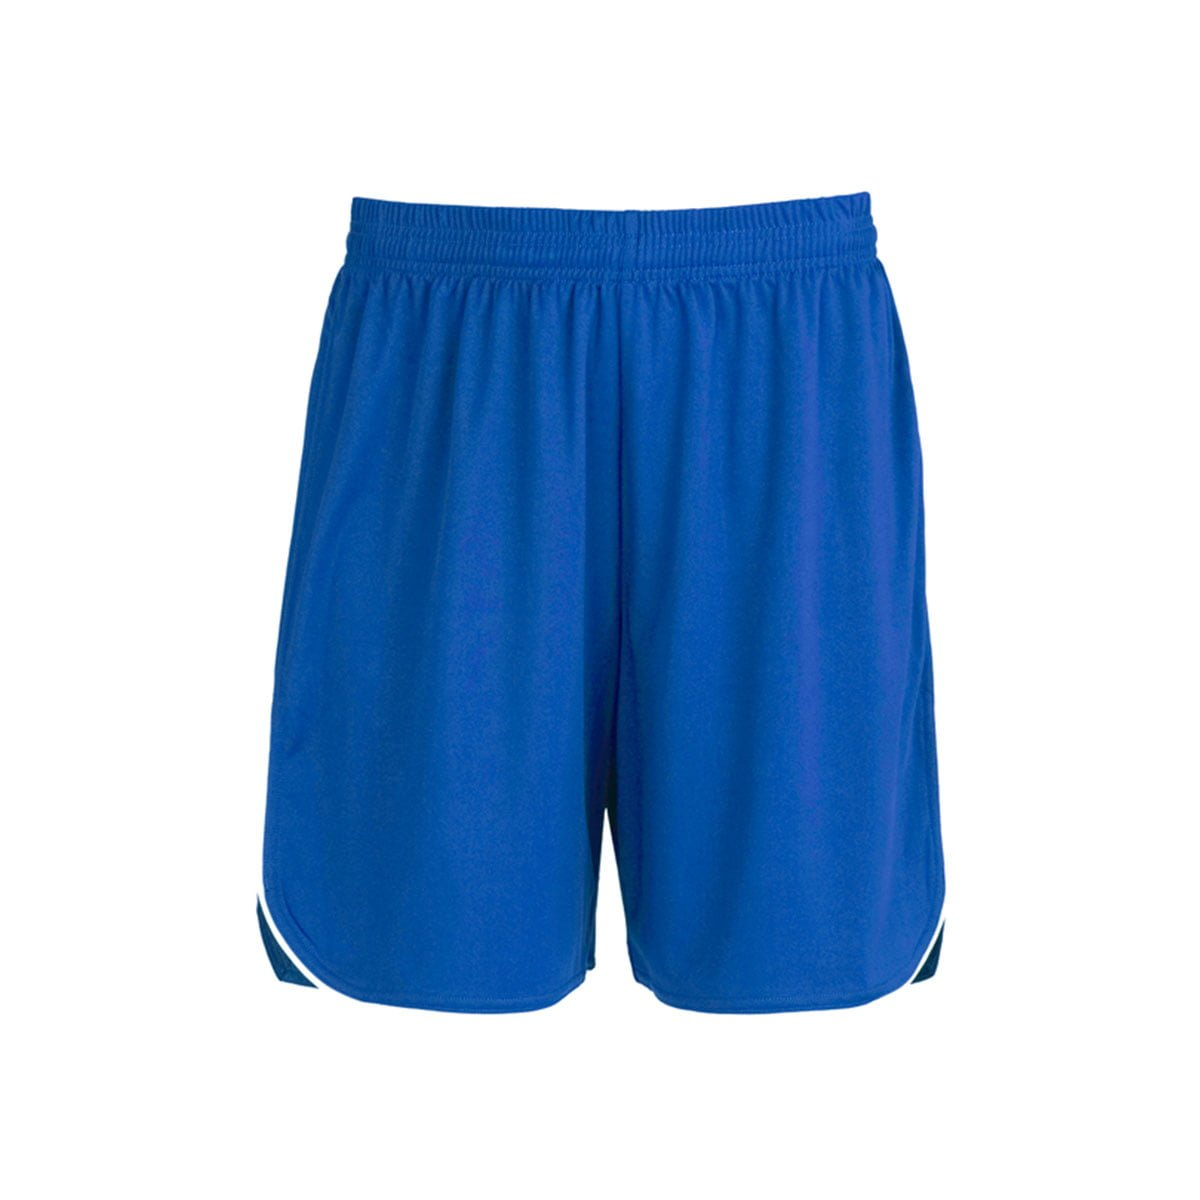 Kids Sonic Shorts-Royal / White